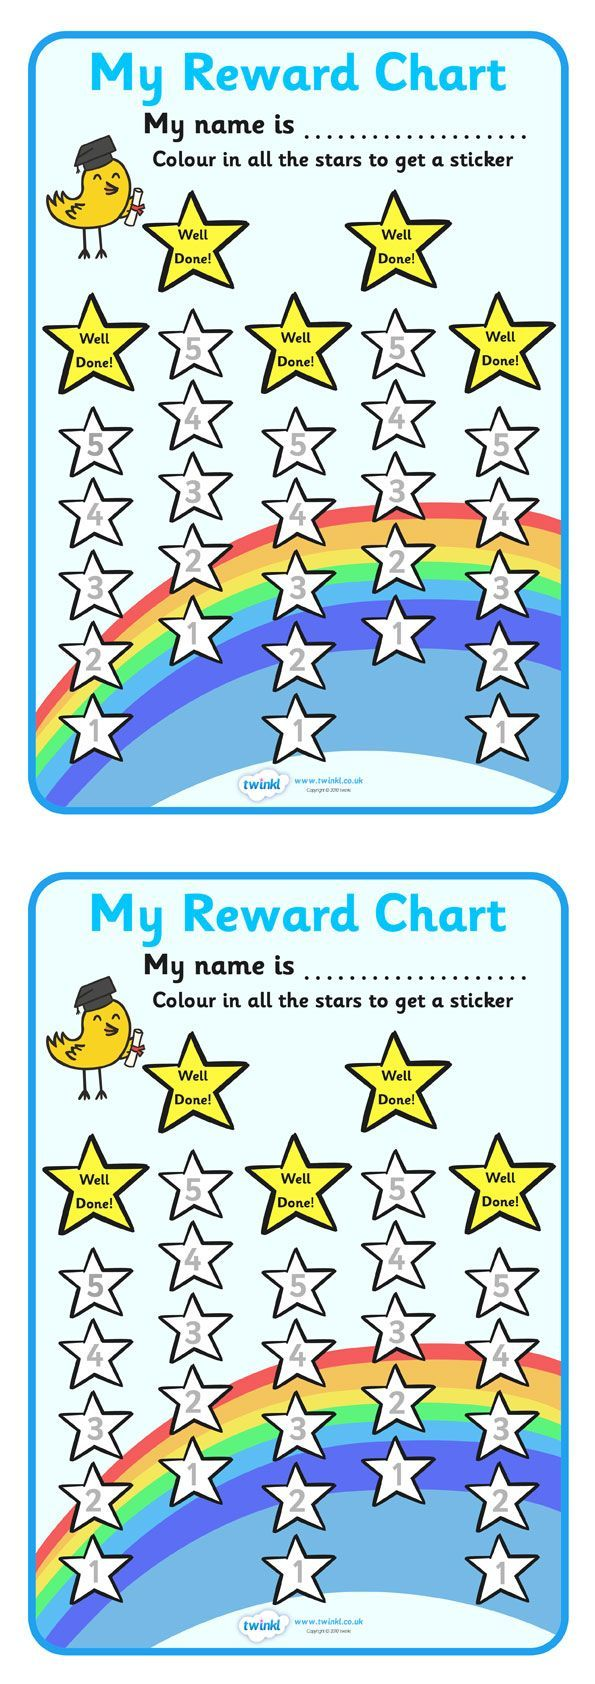 Colouring in reward charts - Twinkl Resources Reward Sticker Chart Stars Classroom Printables For Pre School Kindergarten Elementary School And Beyond